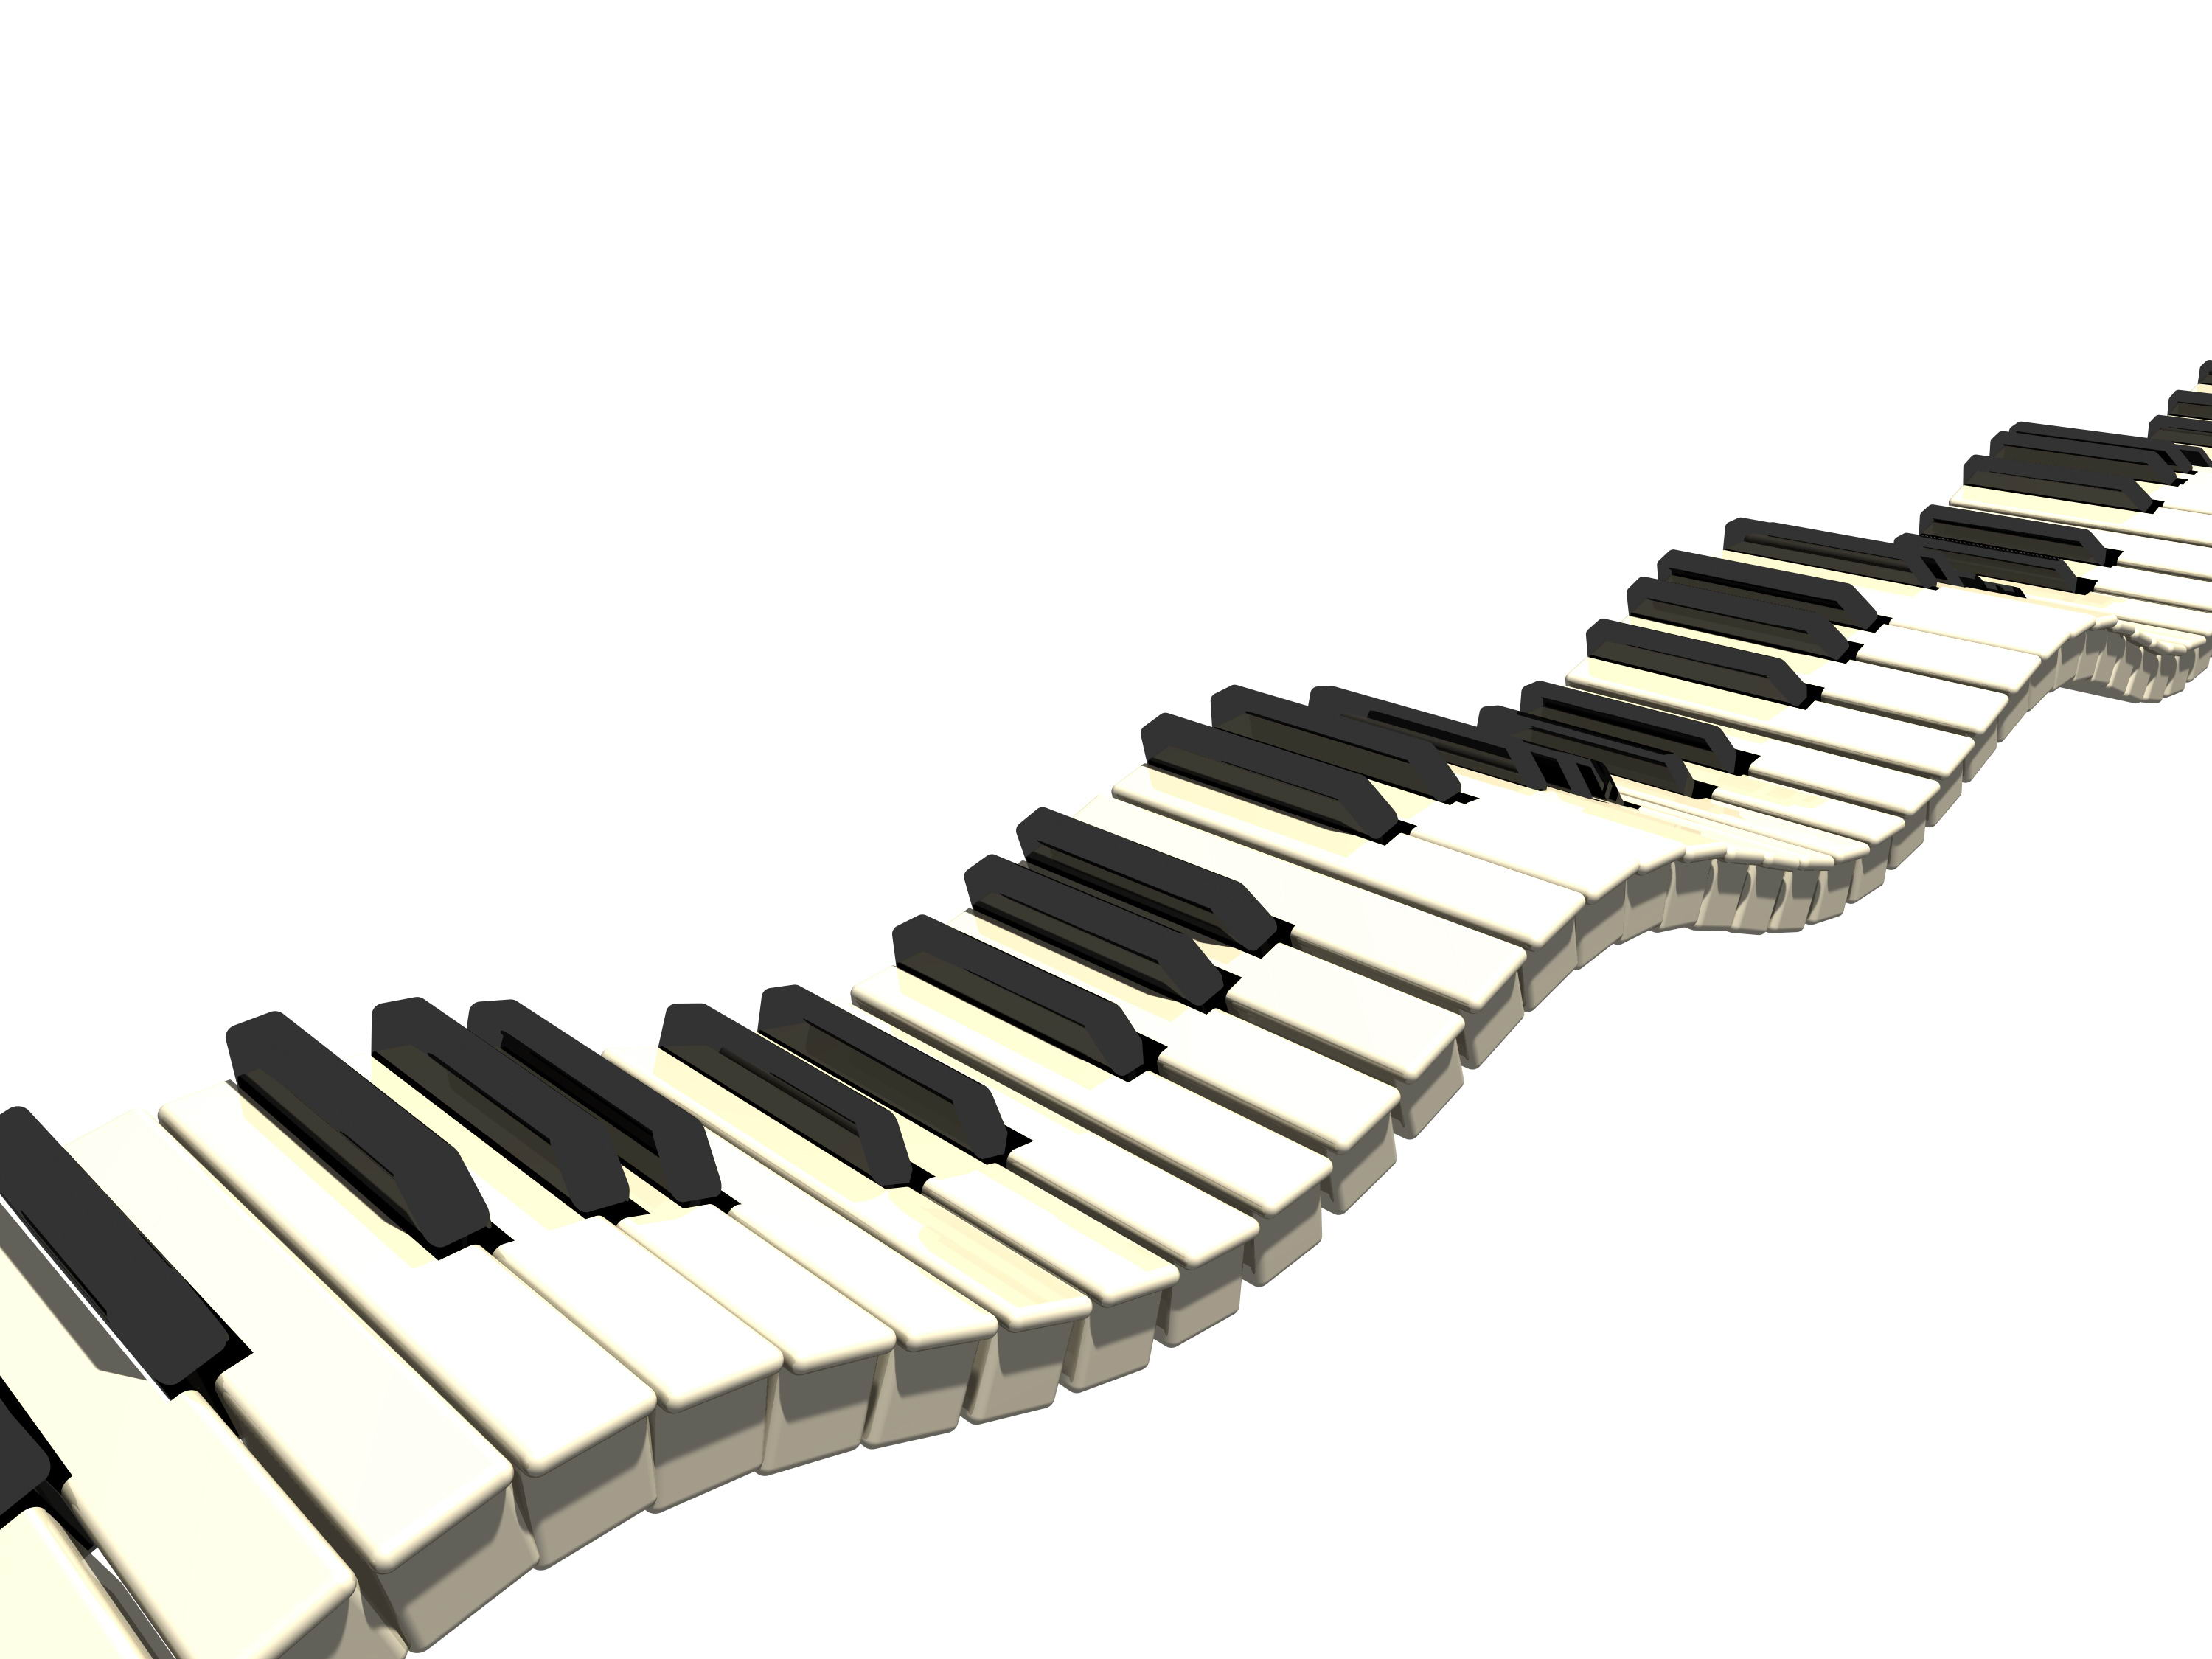 Clipart piano key cover picture freeuse download Piano ten key keyboard clipart - ClipartFest picture freeuse download